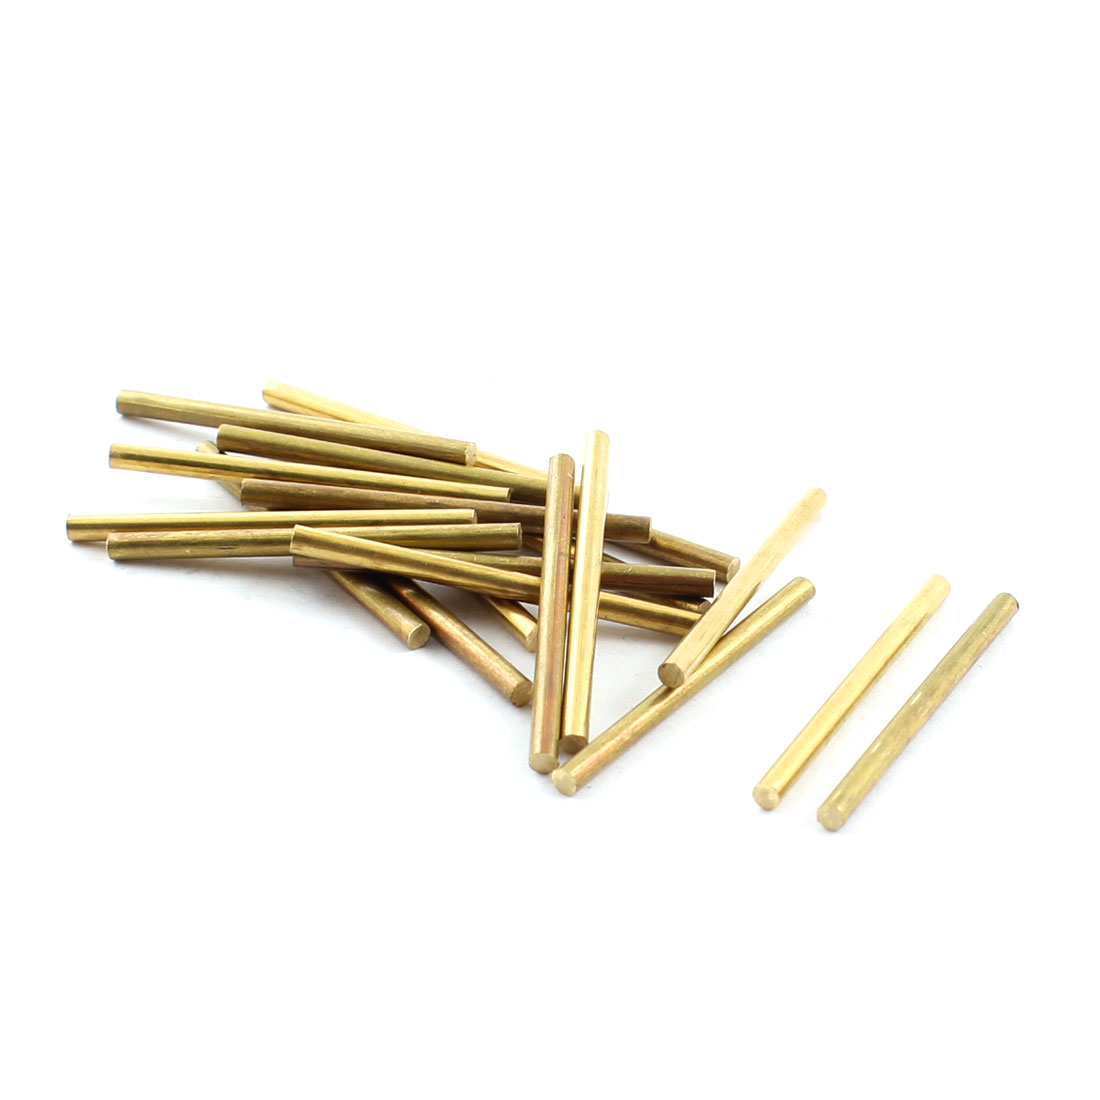 20Pcs 3mm Dia 30mm Length Brass Round Rod Shaft for RC Toy Car